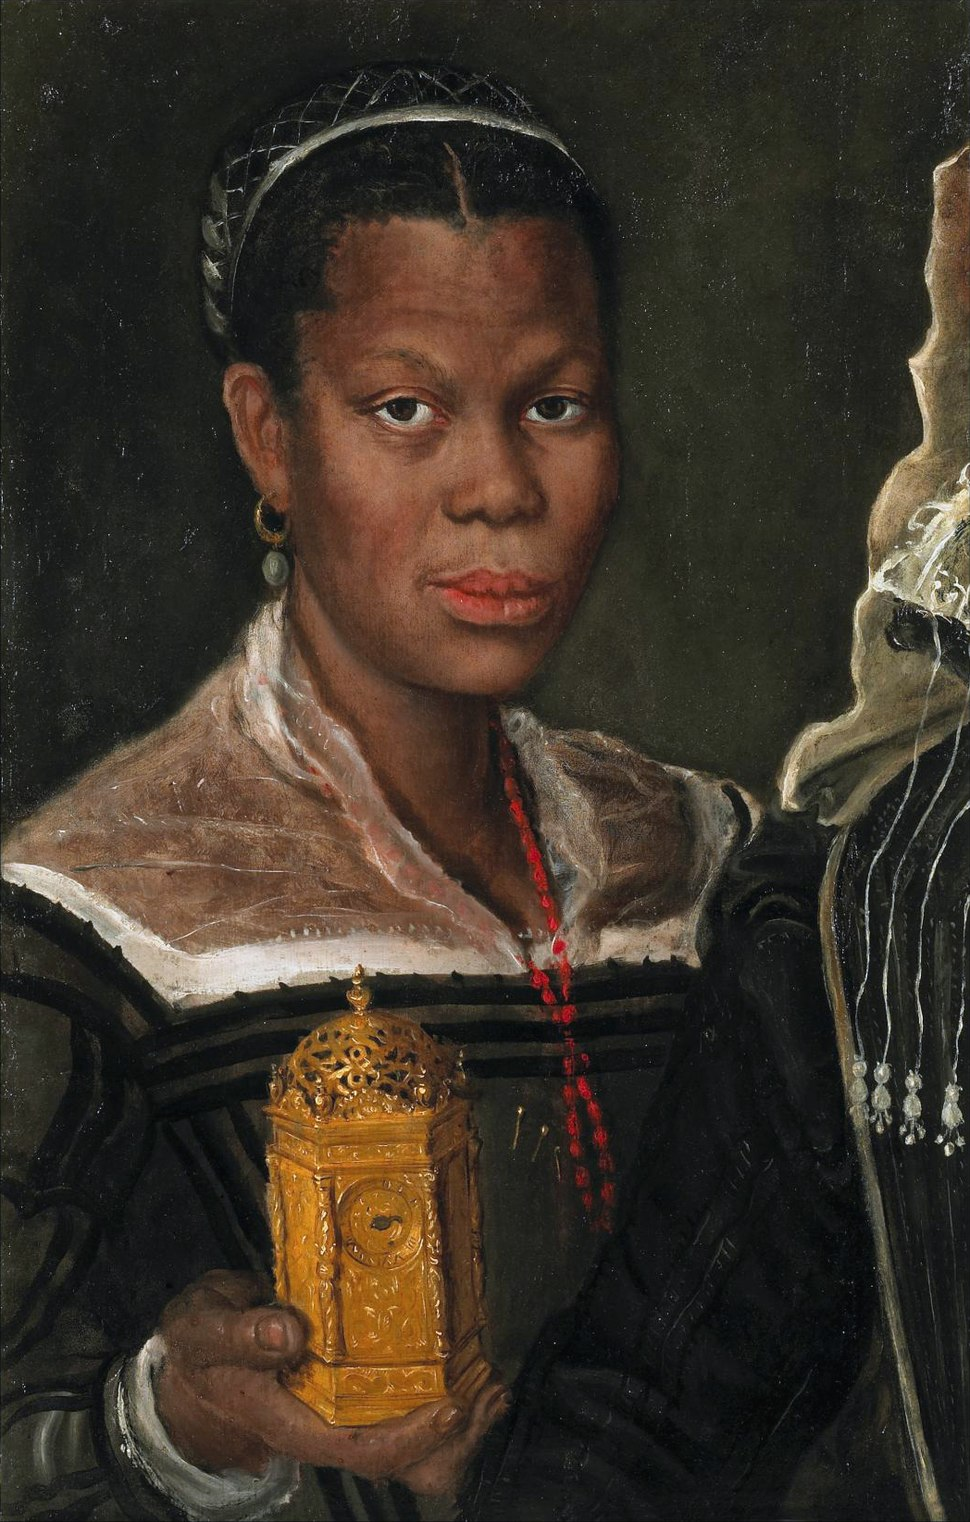 Annibale Carracci, attrib., Portrait of an African Slave Woman, ca. 1580s. Oil on canvas, 60 x 39 x 2 cm (fragment of a larger painting